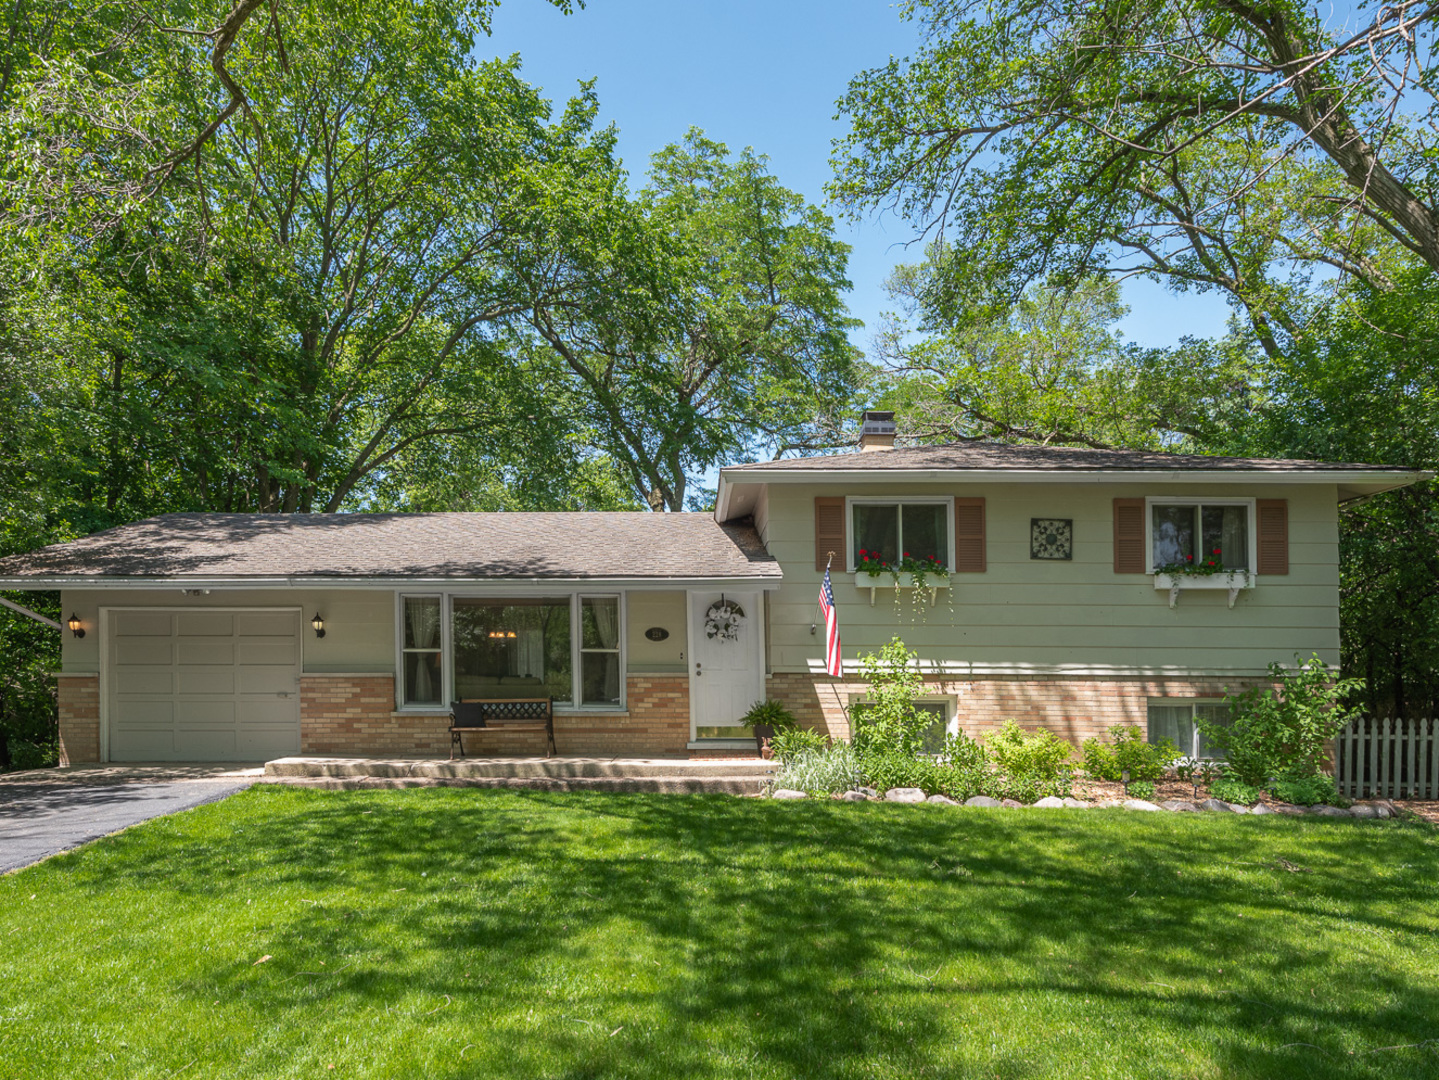 Photo for 228 41st Street, DOWNERS GROVE, IL 60515 (MLS # 10401668)